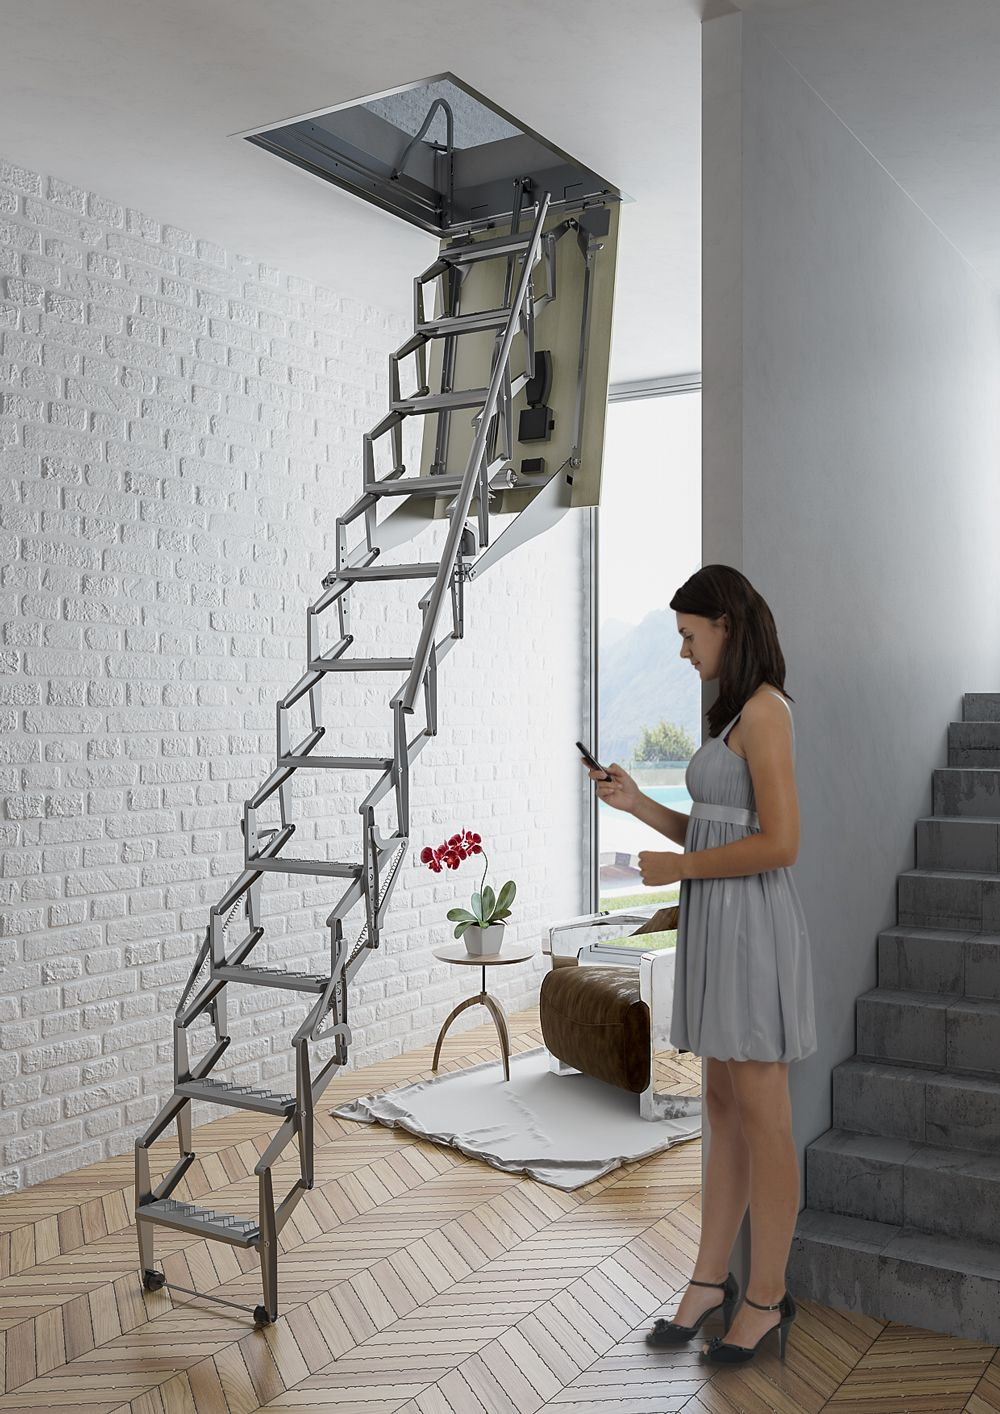 Escalera plegable para techo flexa altillo autom tica feina pinterest escalera - Escalera plegable altillo ...